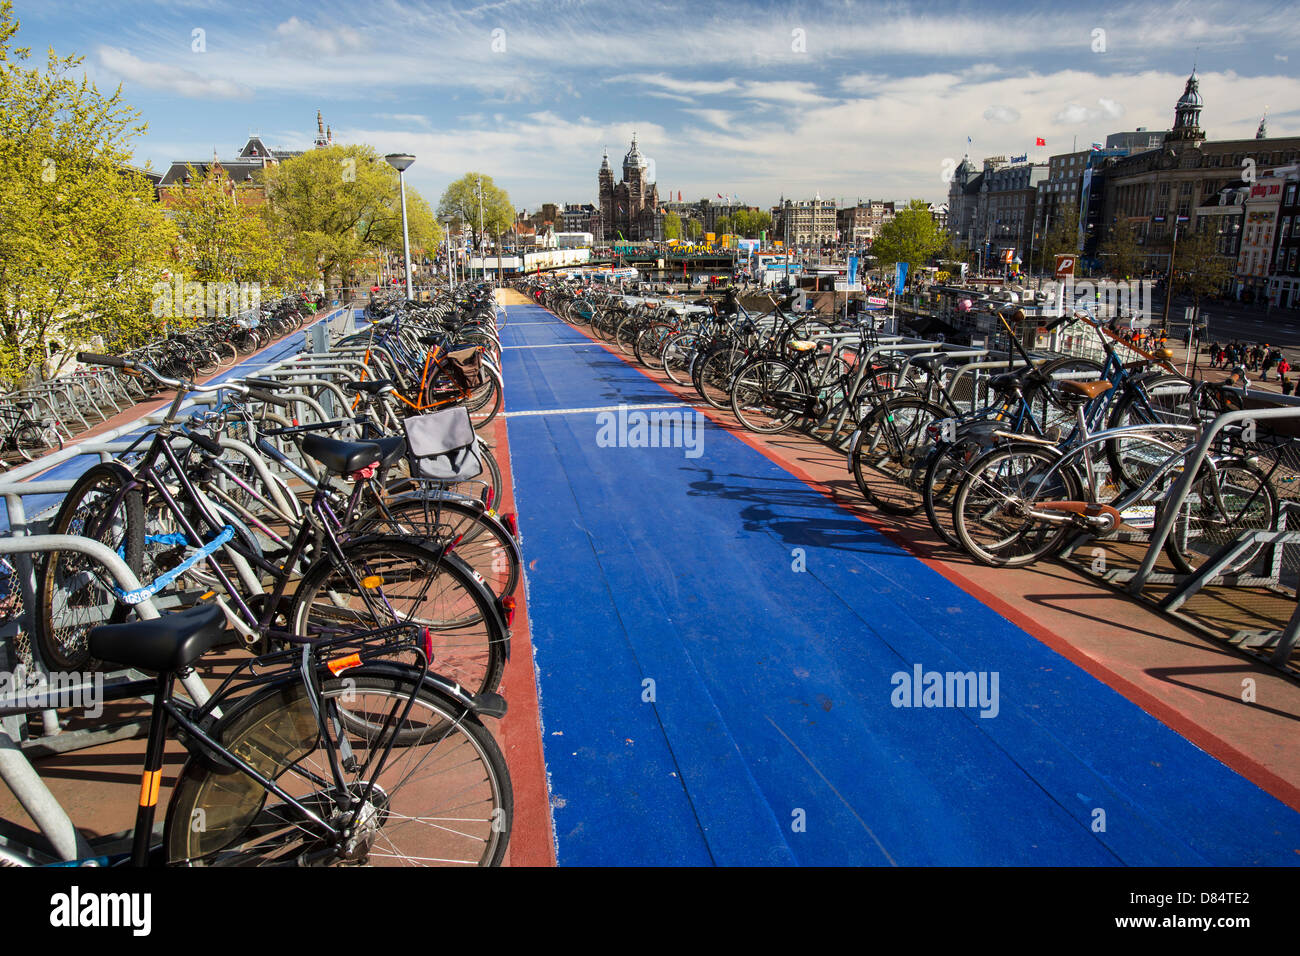 Bikes in bike racks in amsterdam, Netherlands. A huge percentage of the population cycle in this flat, low lying country. Stock Photo